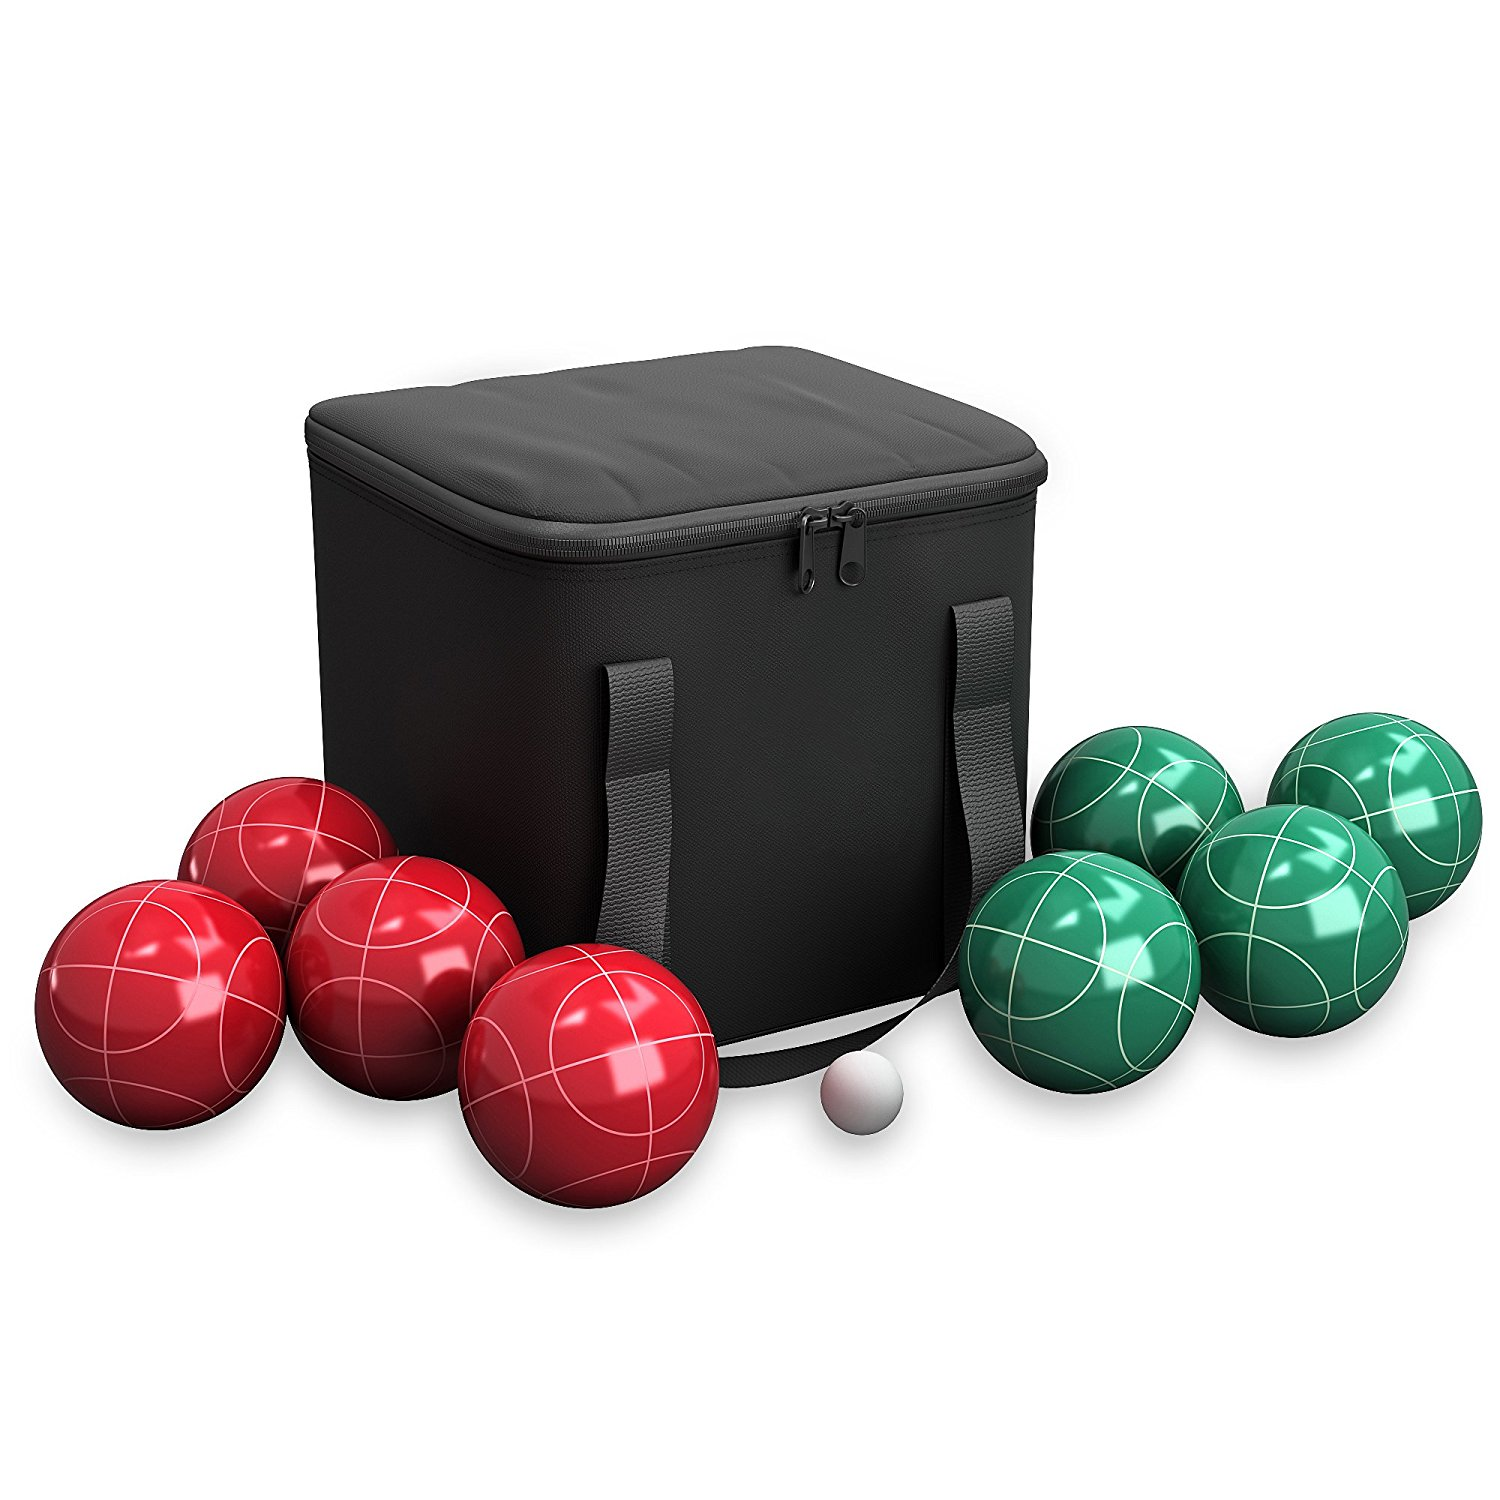 81gwGpmy9mL. SL1500  - Trademark Games 9 Piece Bocce Ball Set with Easy Nylon Carry Case